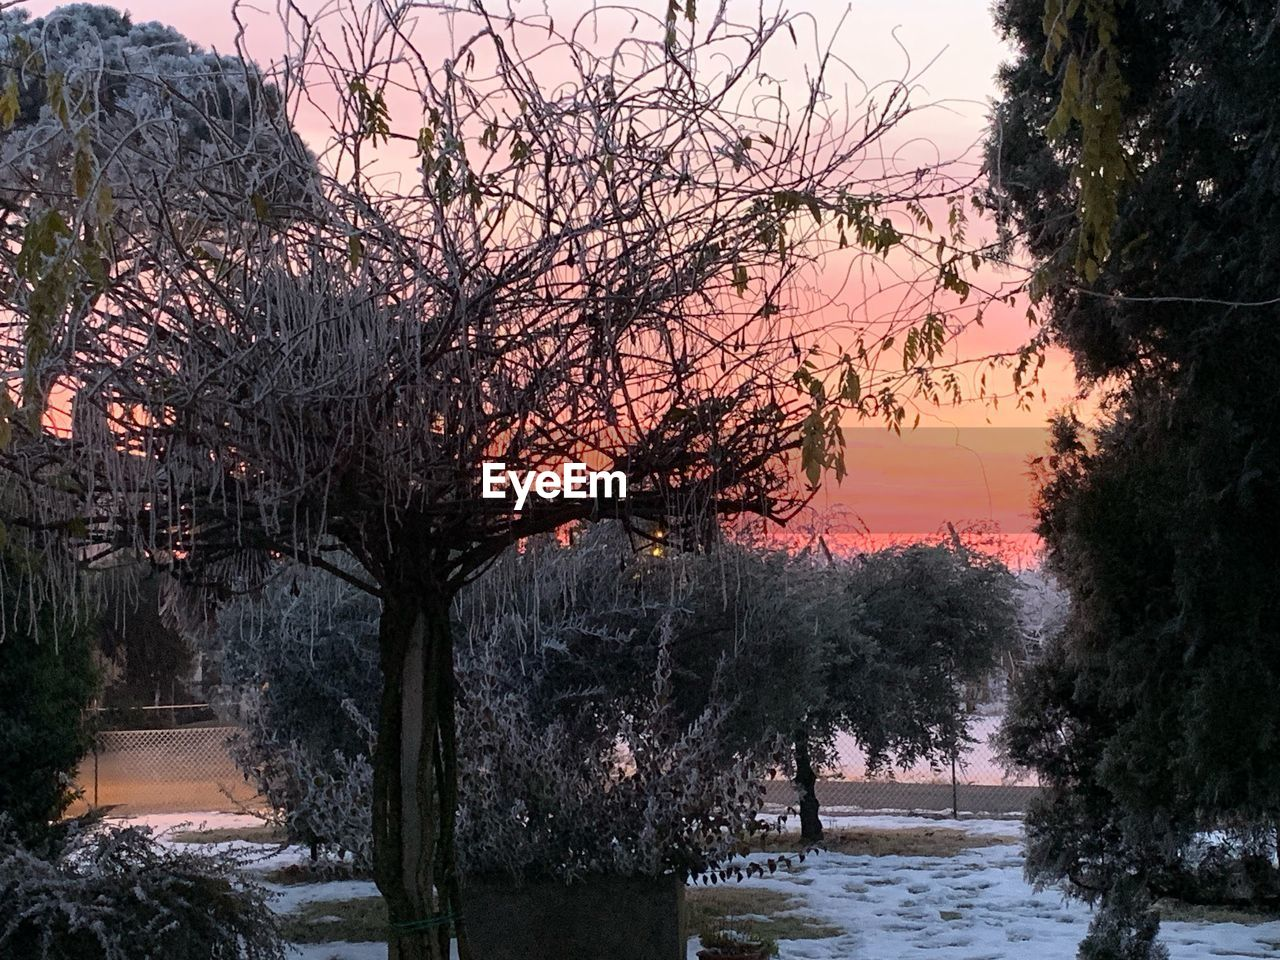 tree, plant, nature, sky, sunset, water, no people, beauty in nature, tranquility, growth, scenics - nature, tranquil scene, branch, cold temperature, snow, winter, bare tree, outdoors, treelined